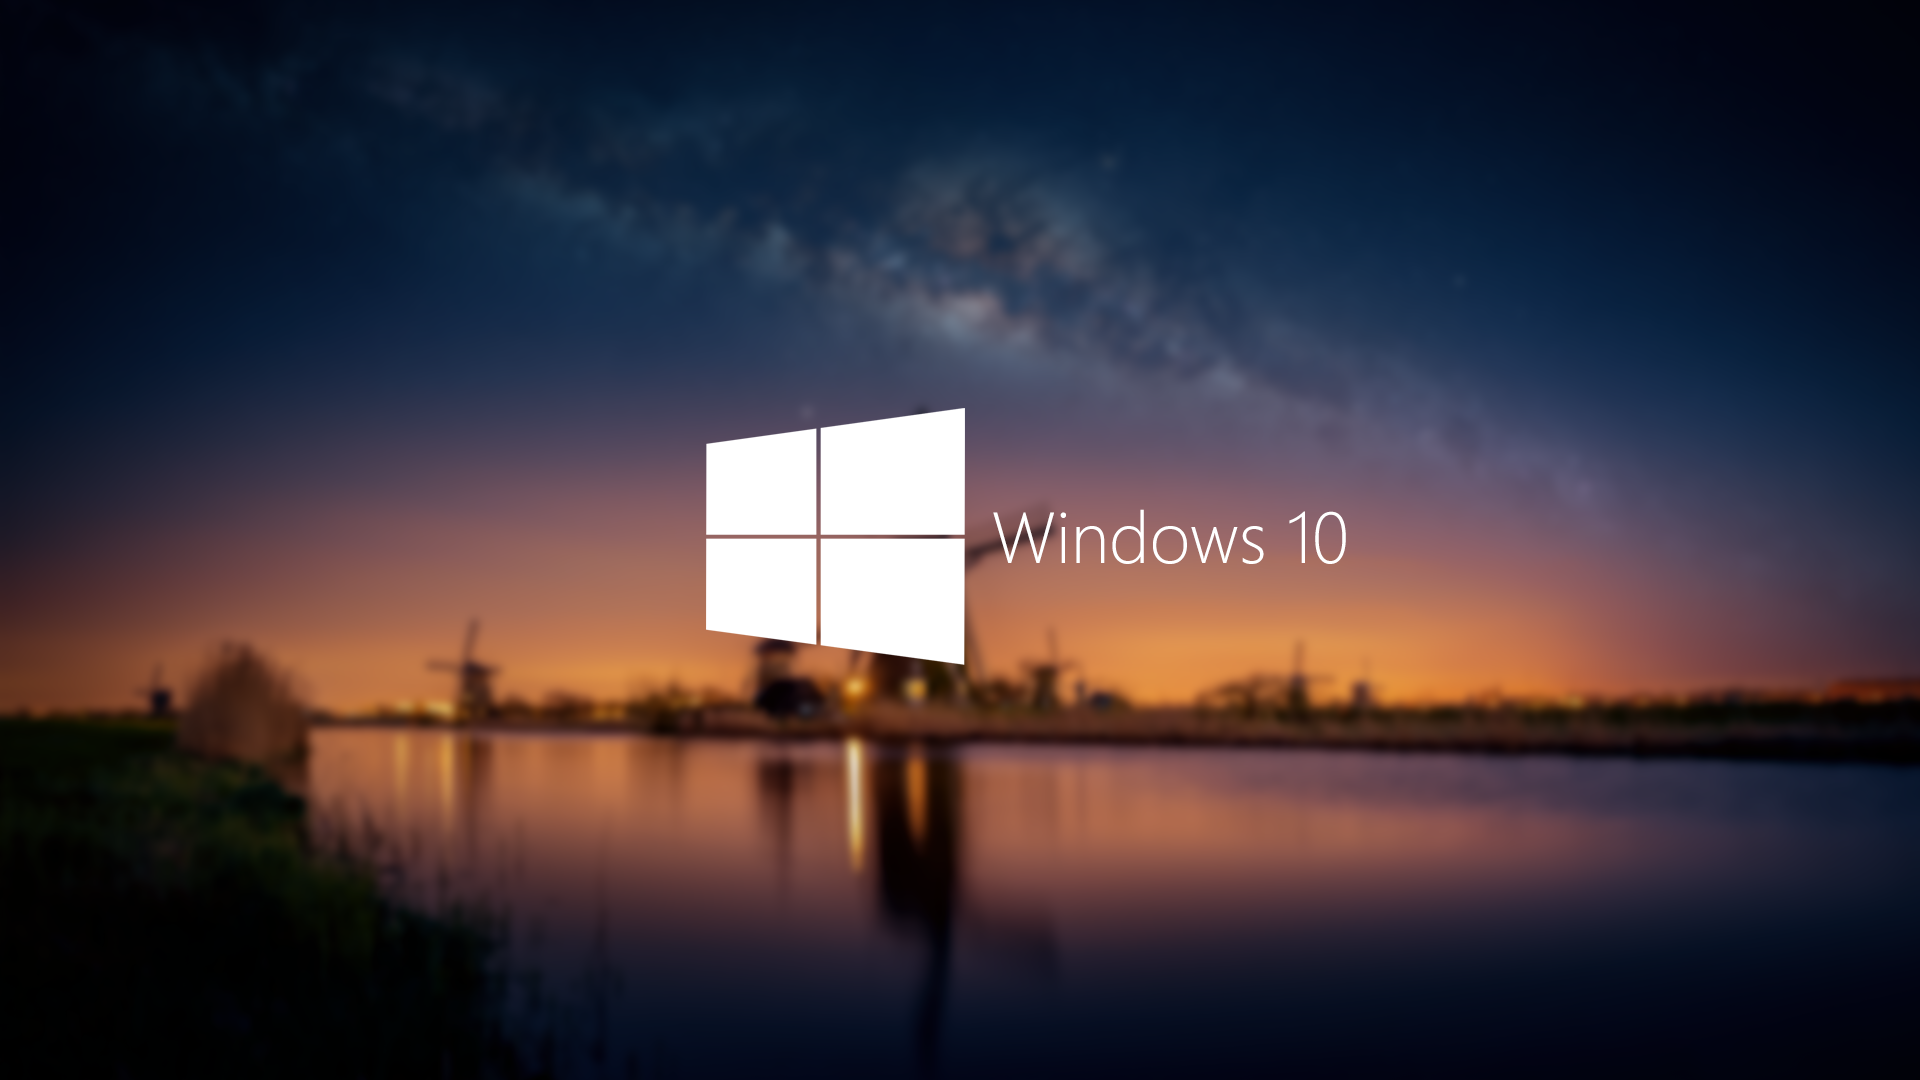 Windows 10 Wallpaper 1080p Posted By Christopher Mercado